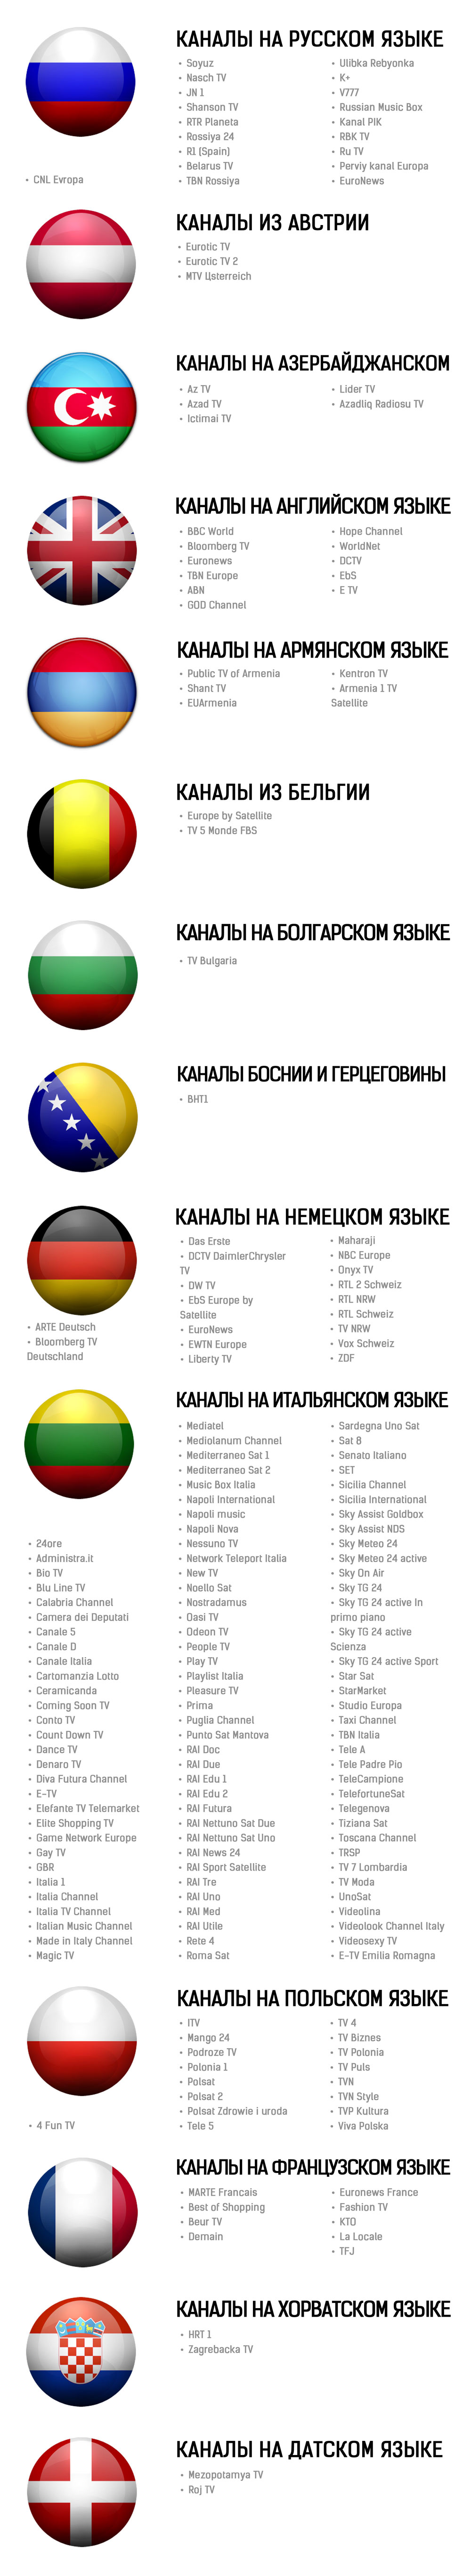 http://tricolorkin.ru//images/1_2_for_web.jpg